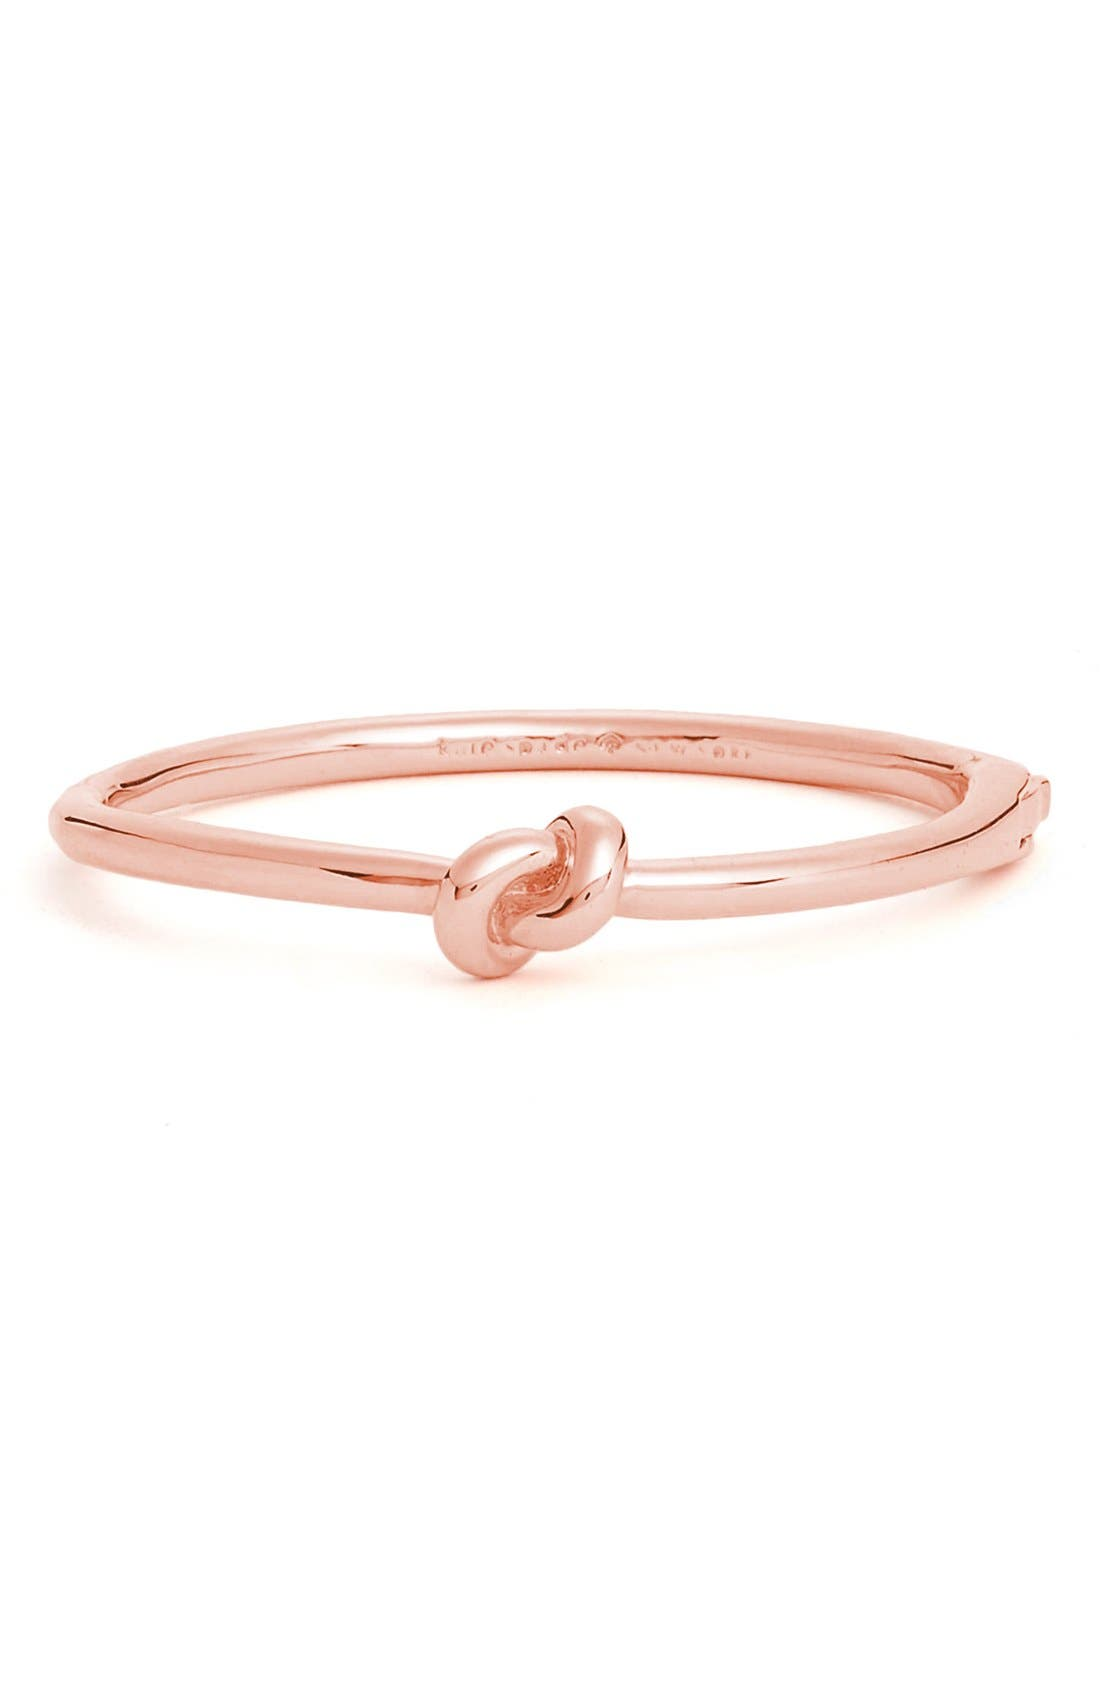 kate spade new york 'sailors knot' bangle